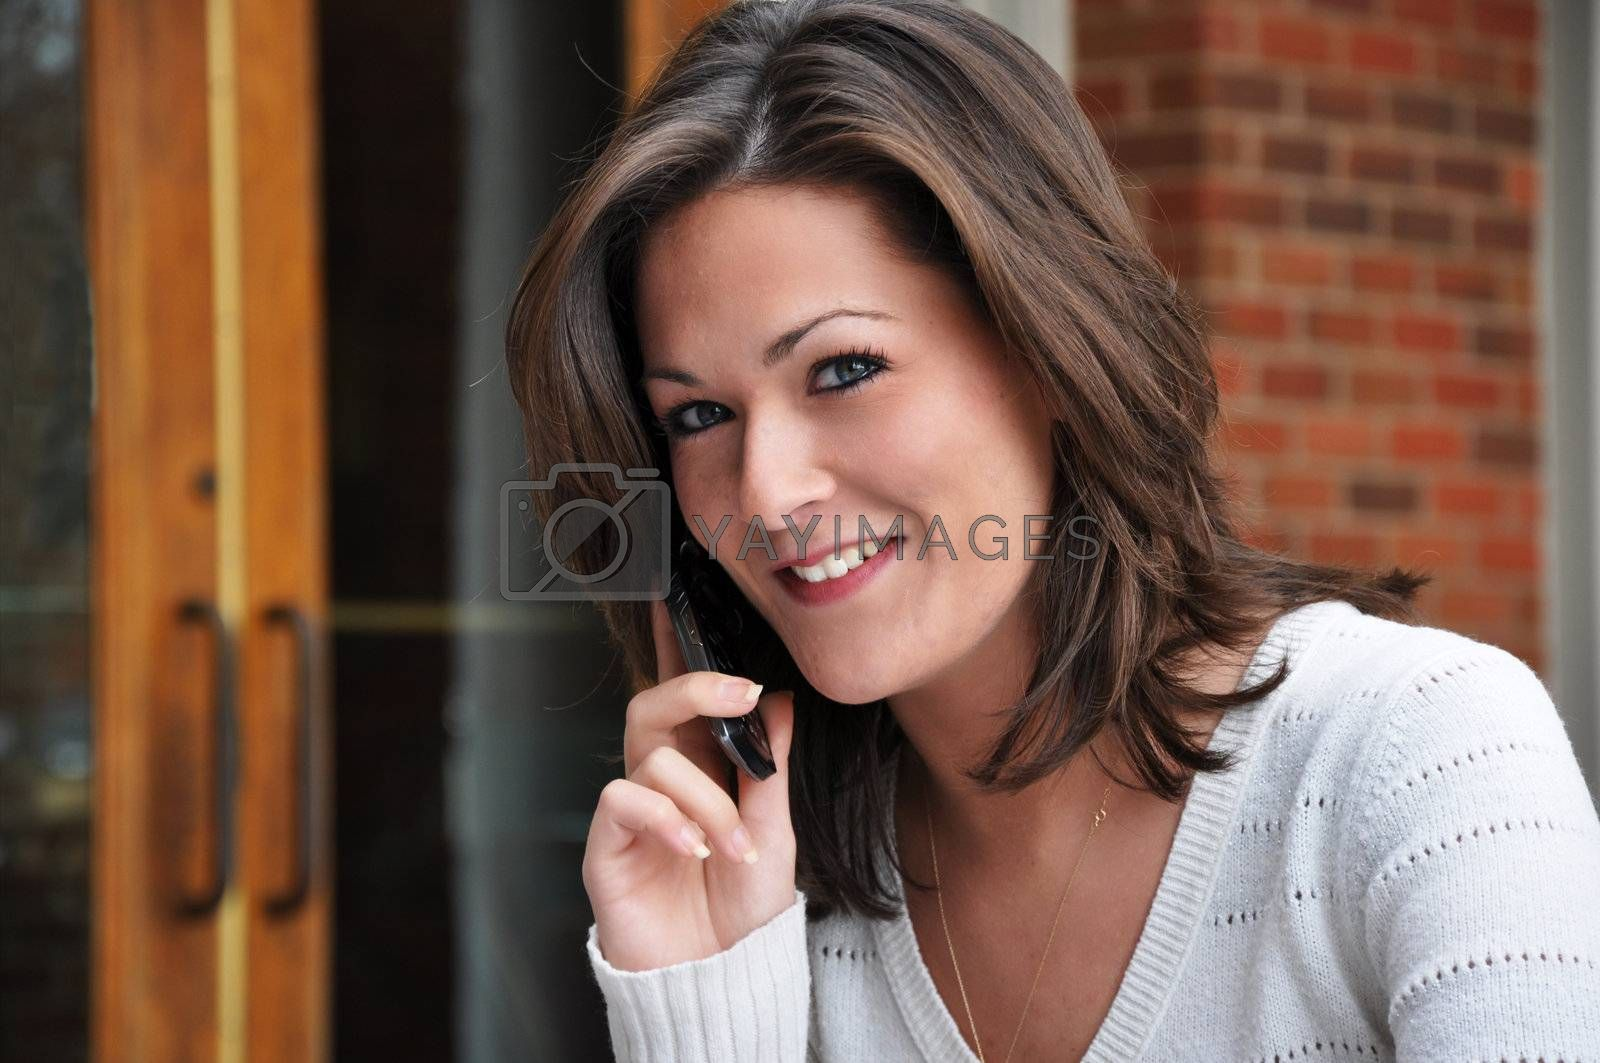 Closeup of young woman talking on cell phone and looking at camera.